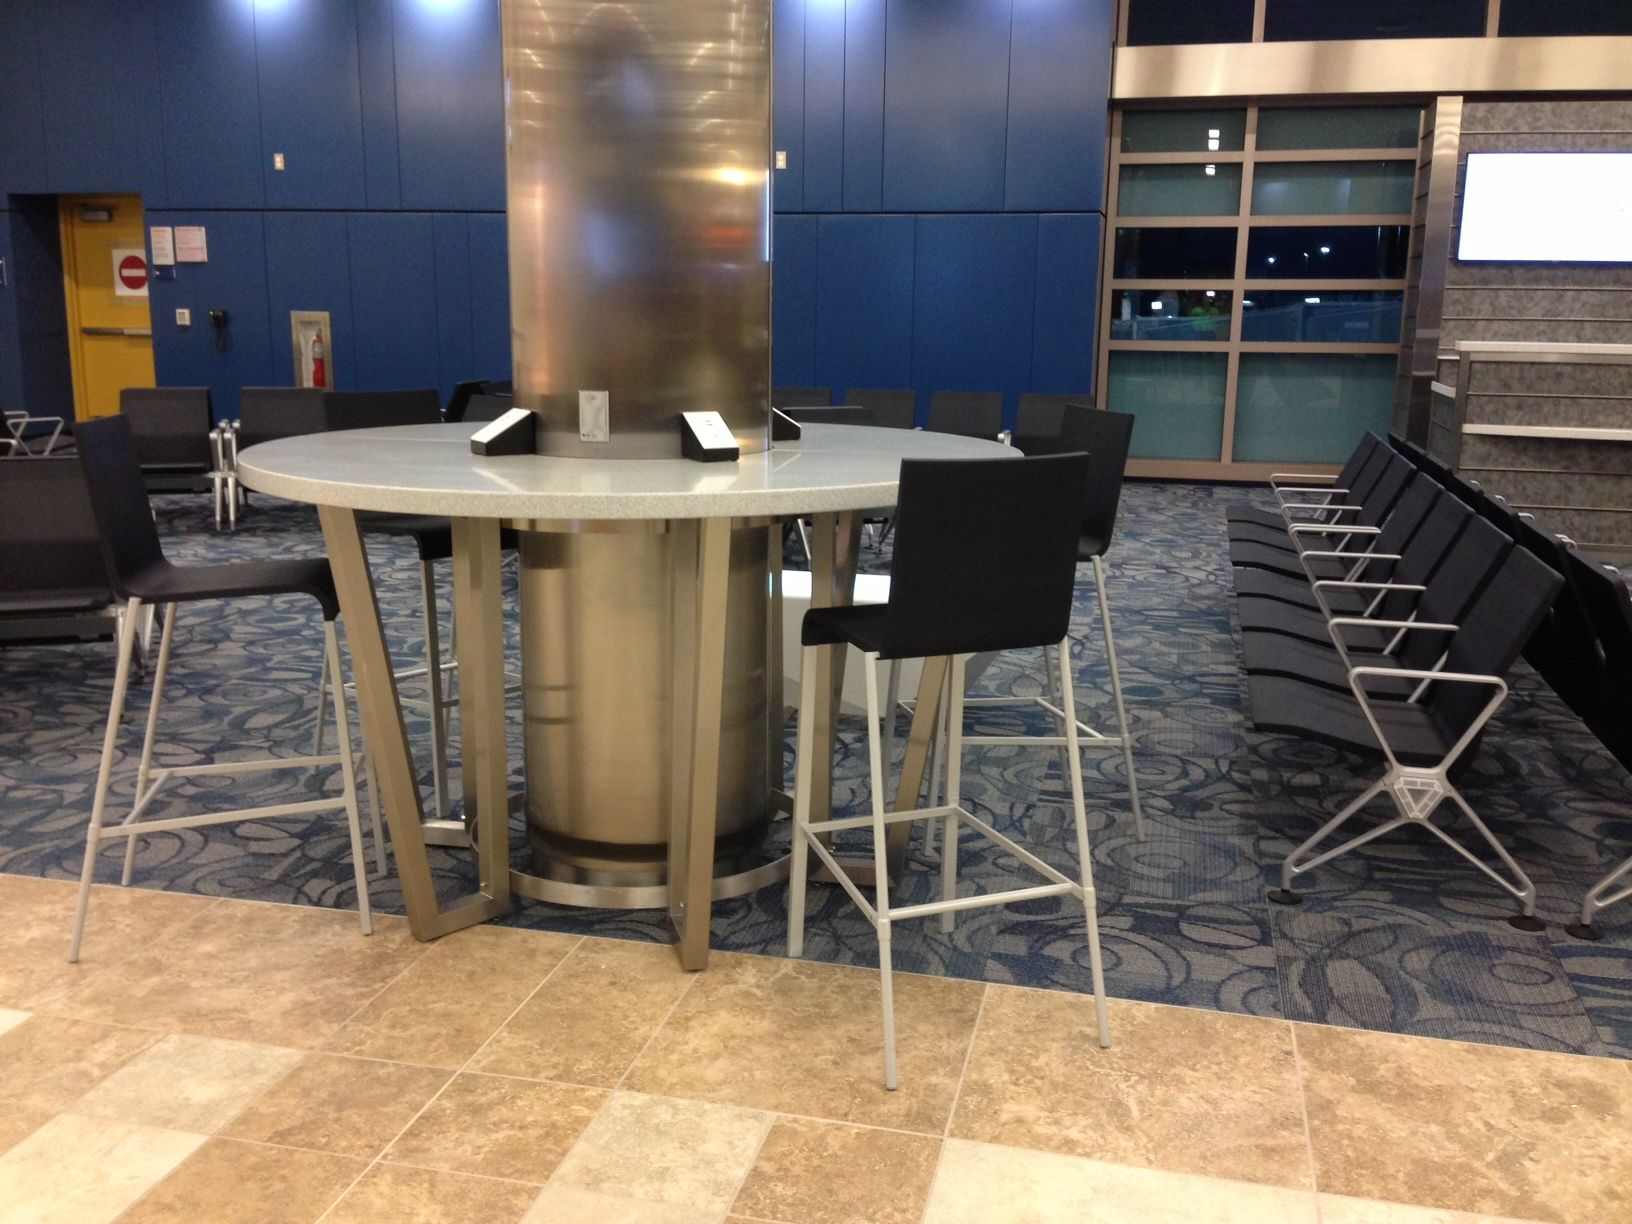 Myrtle Beach Airport Seating Around Column Herald Office Solutions Columbia Sc Charleston Dillon Cheraw Sumter